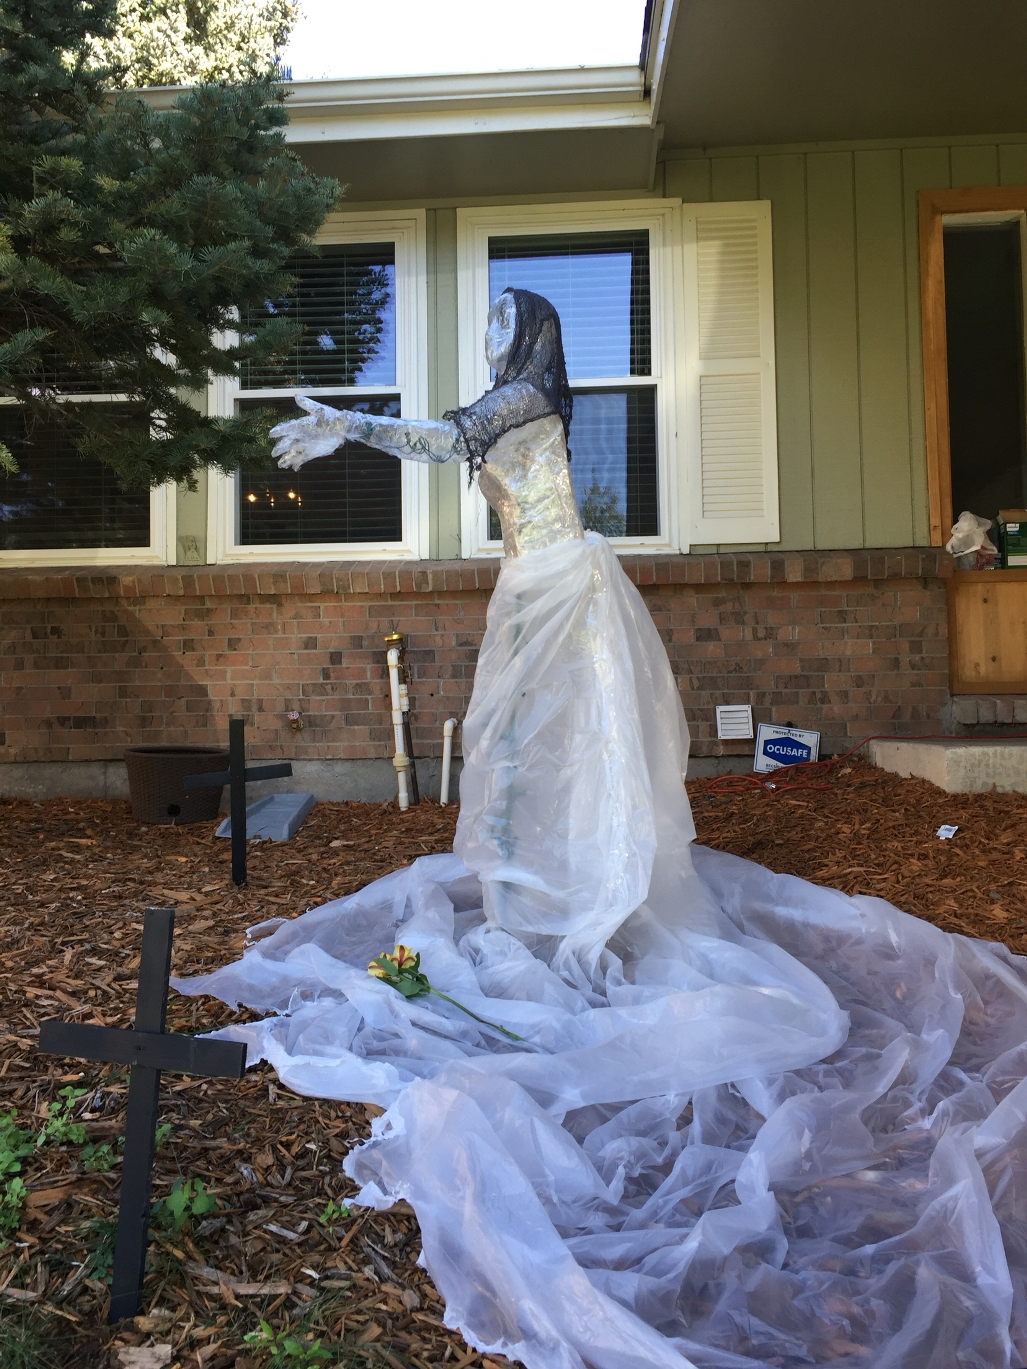 packing-tape-Halloween-ghost-decorations